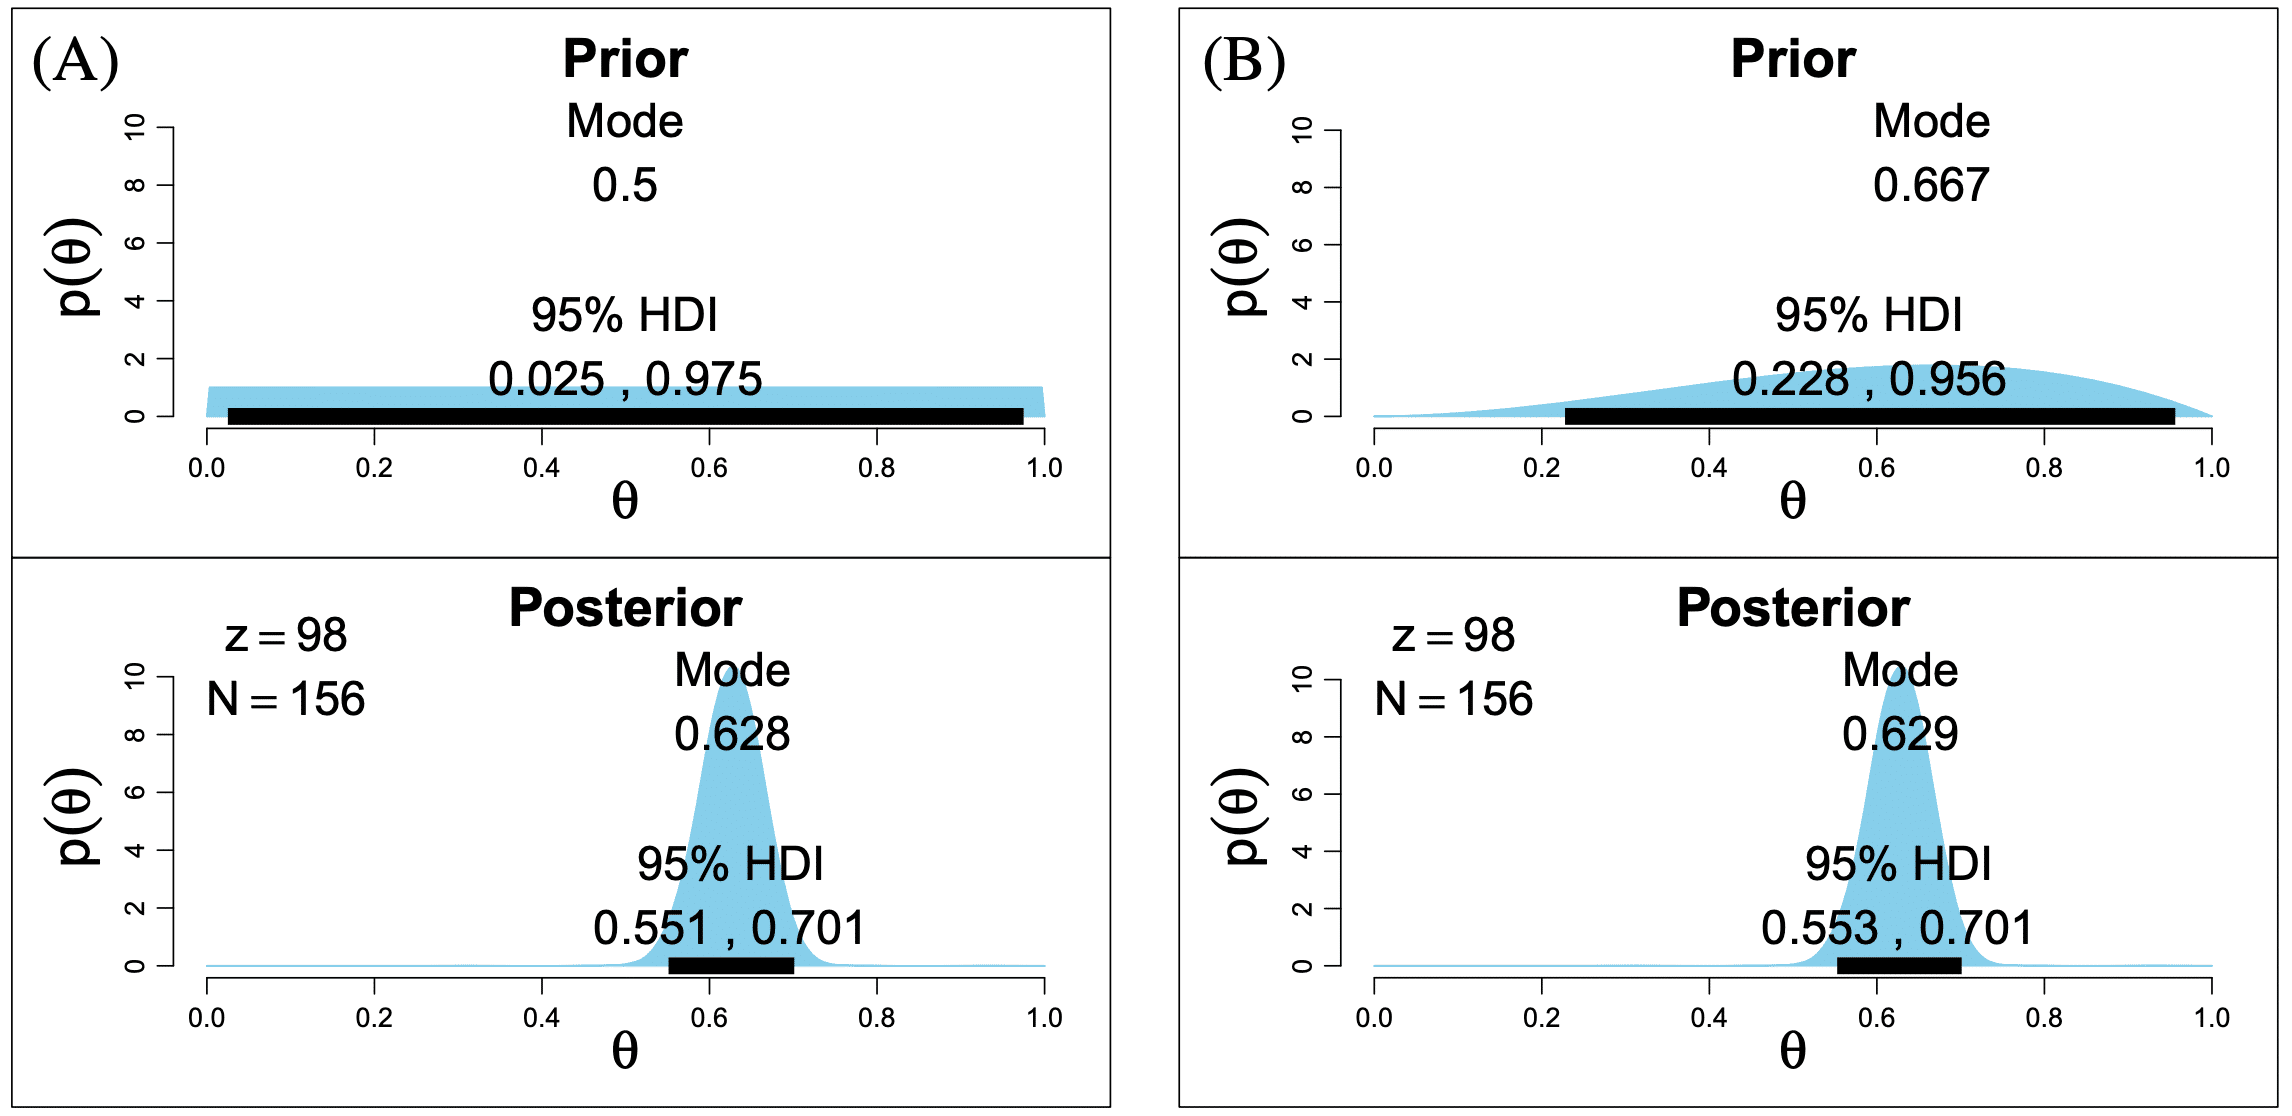 Graphs showing the effects of various prior probabilities on the posterior probabilities